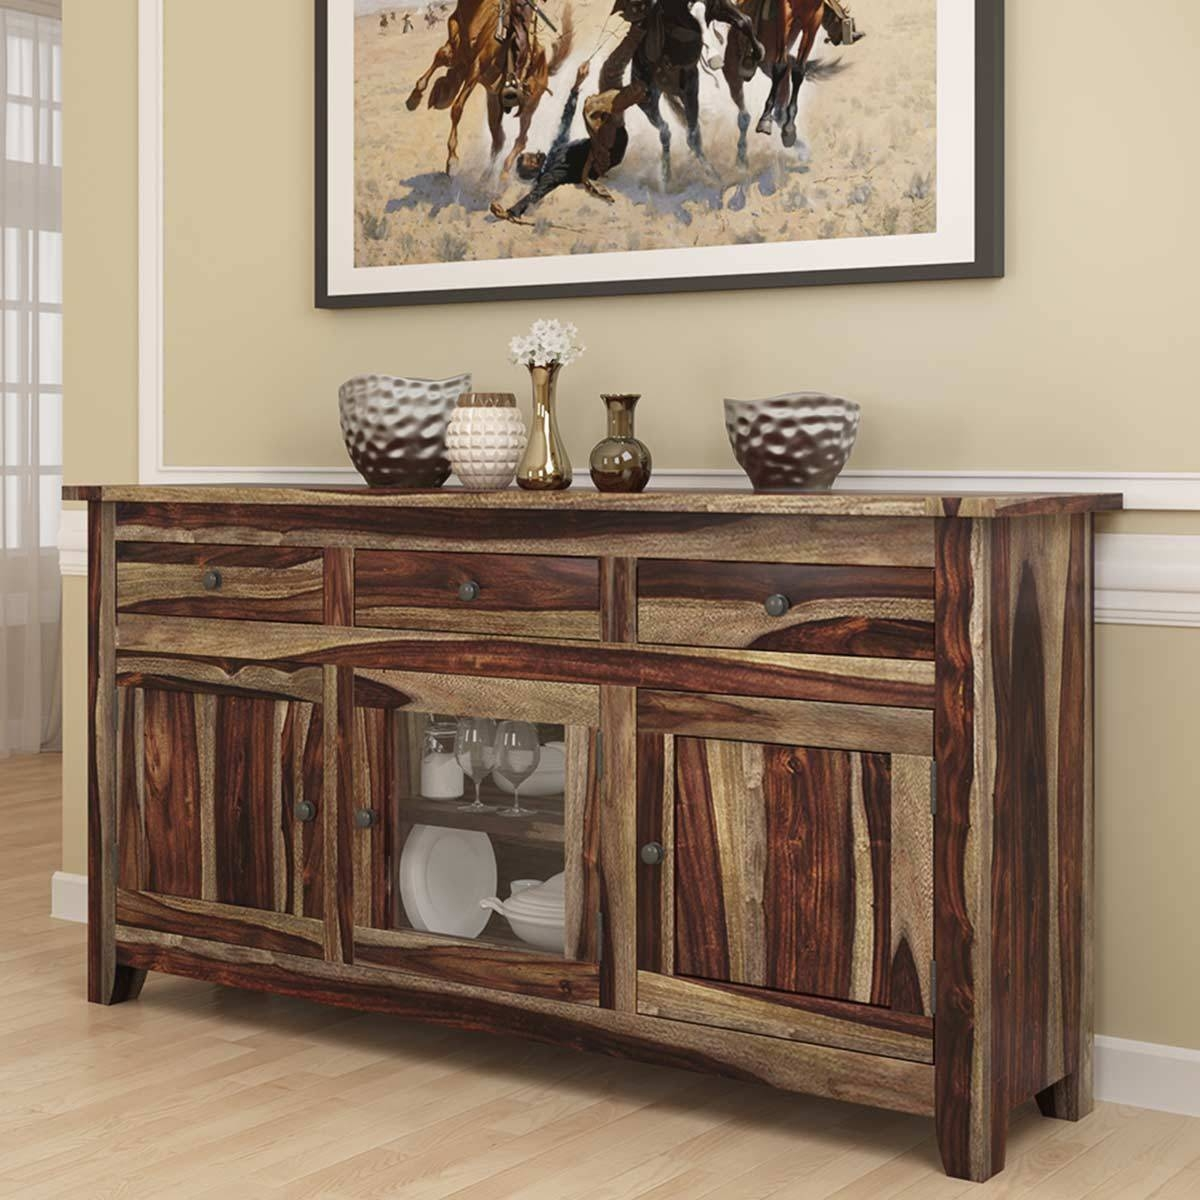 Rustic Buffets Sideboards With Best And Newest Rustic Buffet Sideboards (#7 of 15)